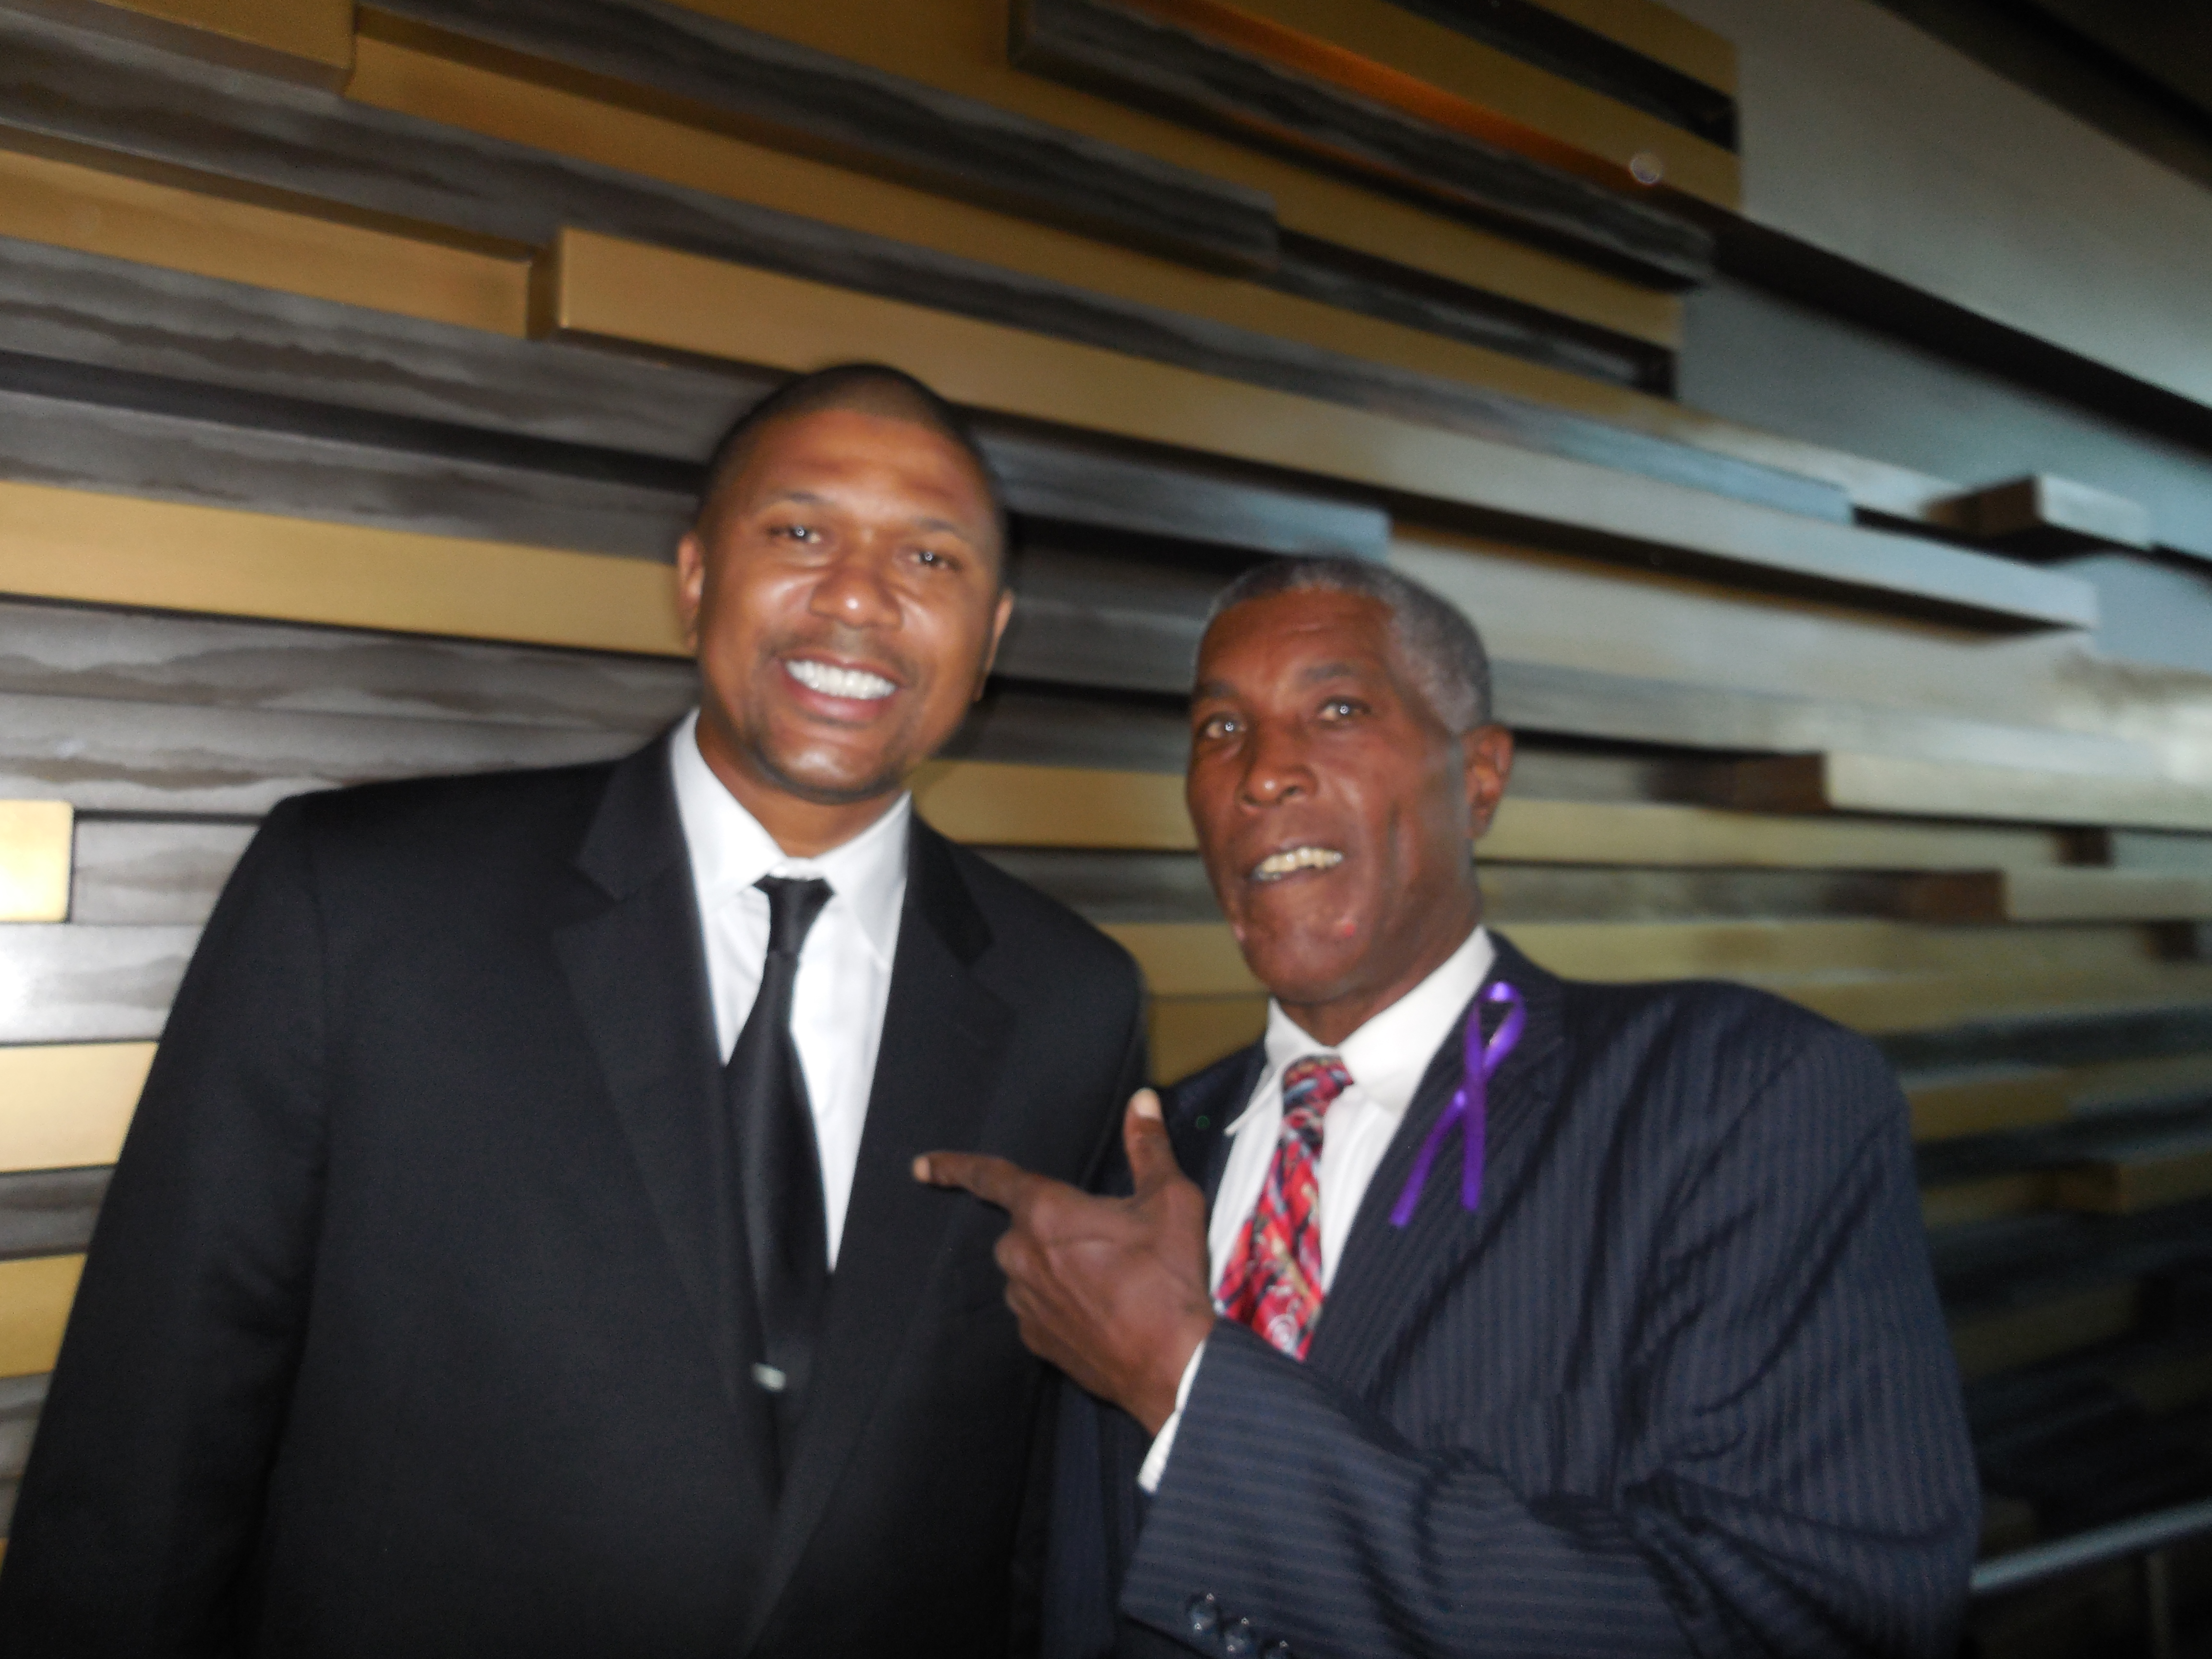 Jalen Rose At the Frontline Fighting for Education of Young